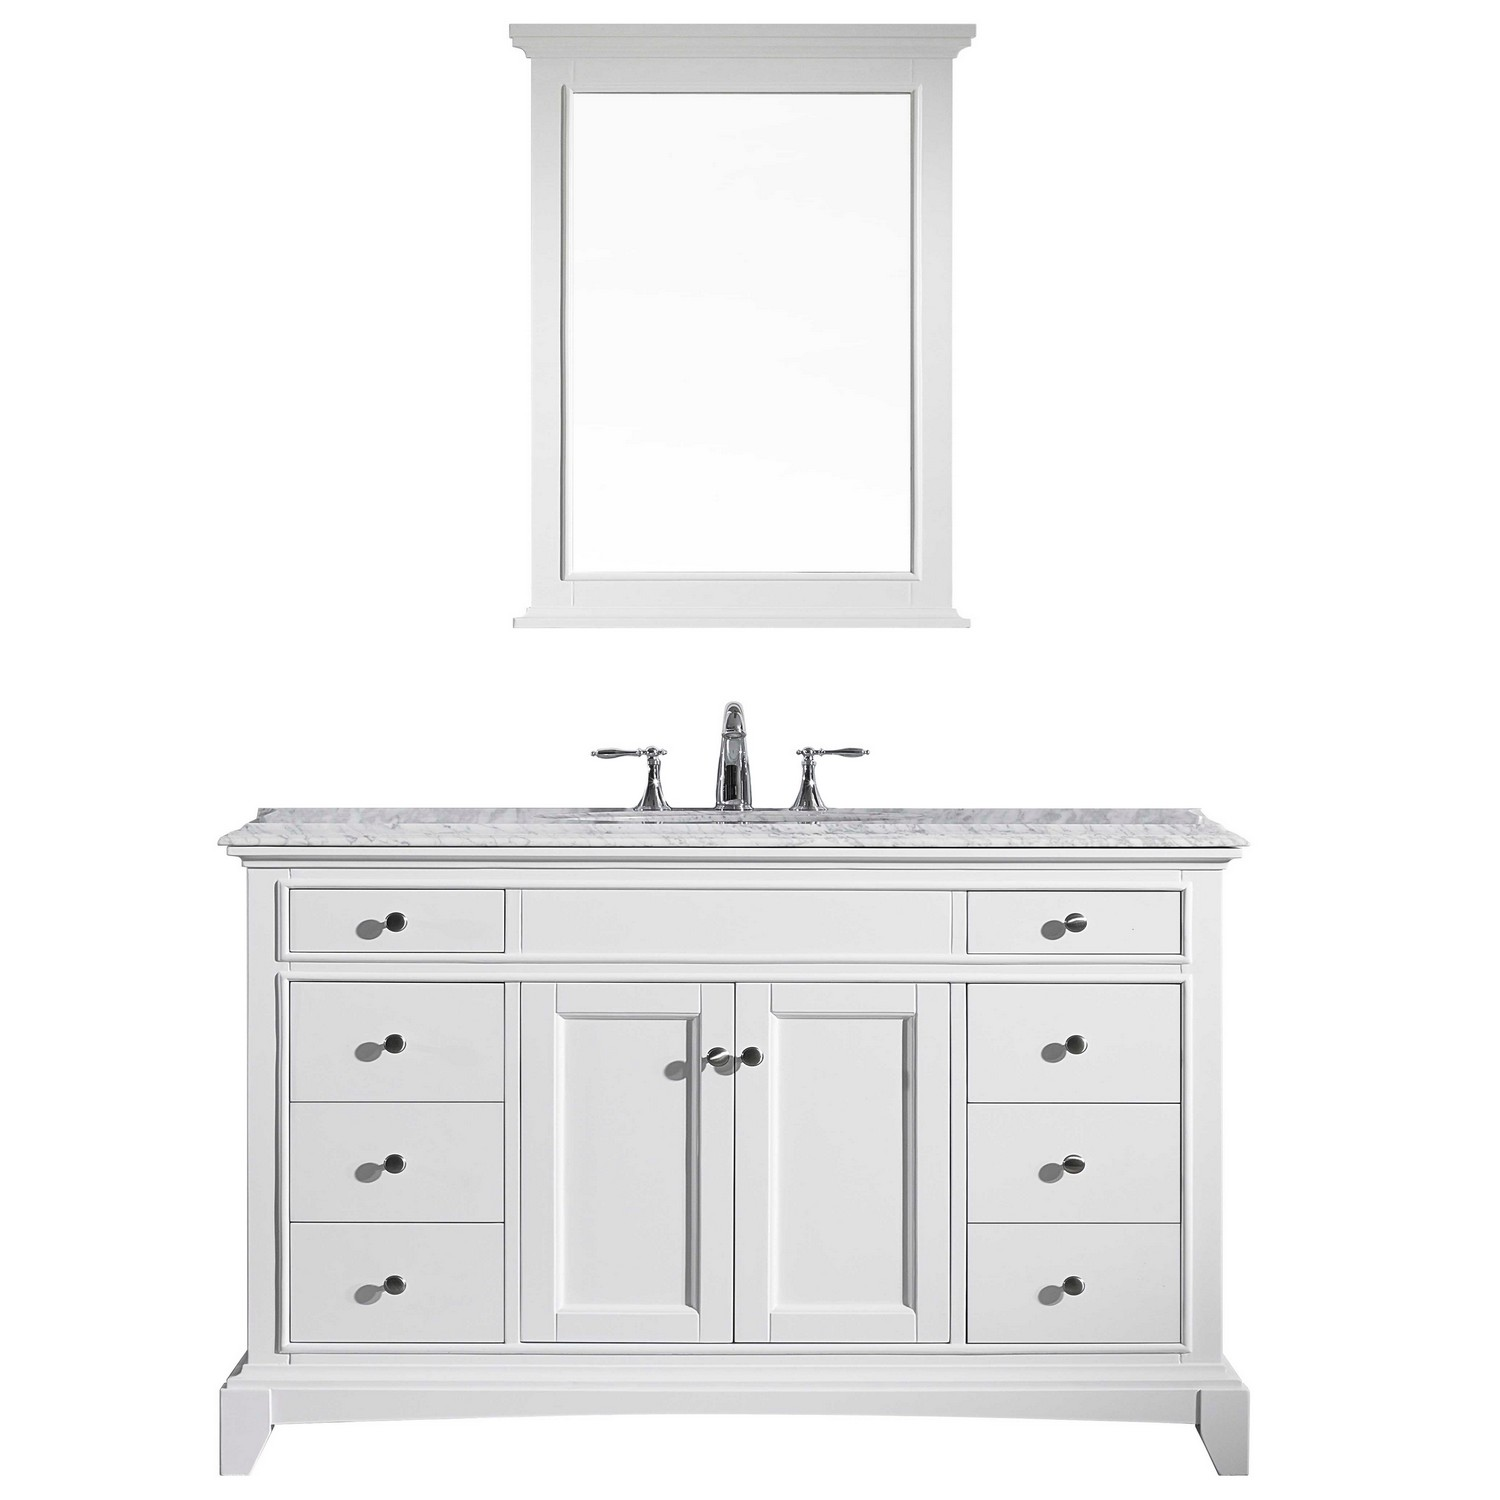 "EVVN709 48WH A Main - Eviva Elite Stamford 48"" White Solid Wood Bathroom Vanity Set with Double OG White Carrera Marble Top & White Undermount Porcelain Sink"